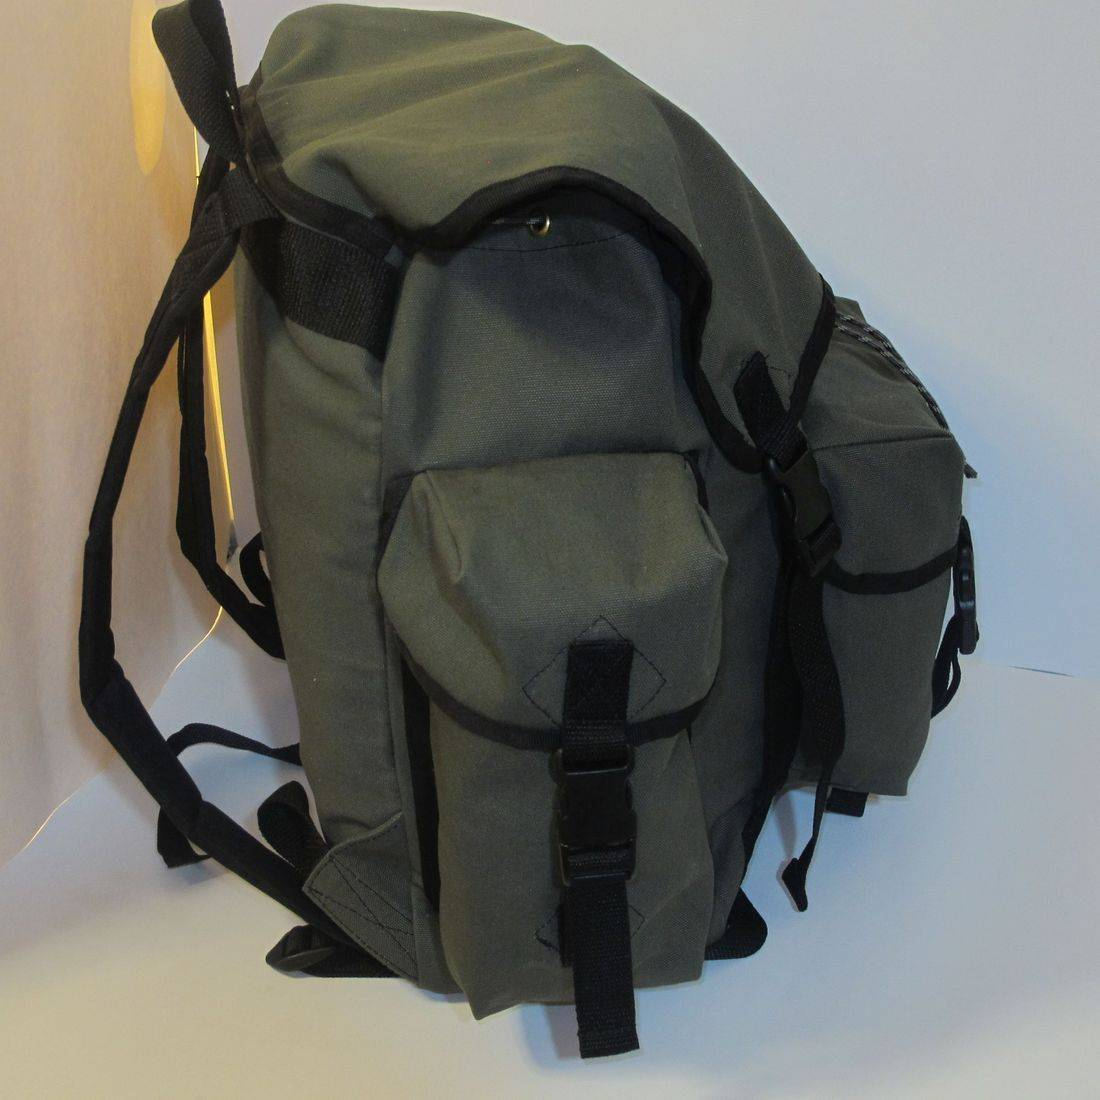 30 liter handmade backpack, made in America, travel bag, camping gear, backpack for bushcrafting, .jpeg